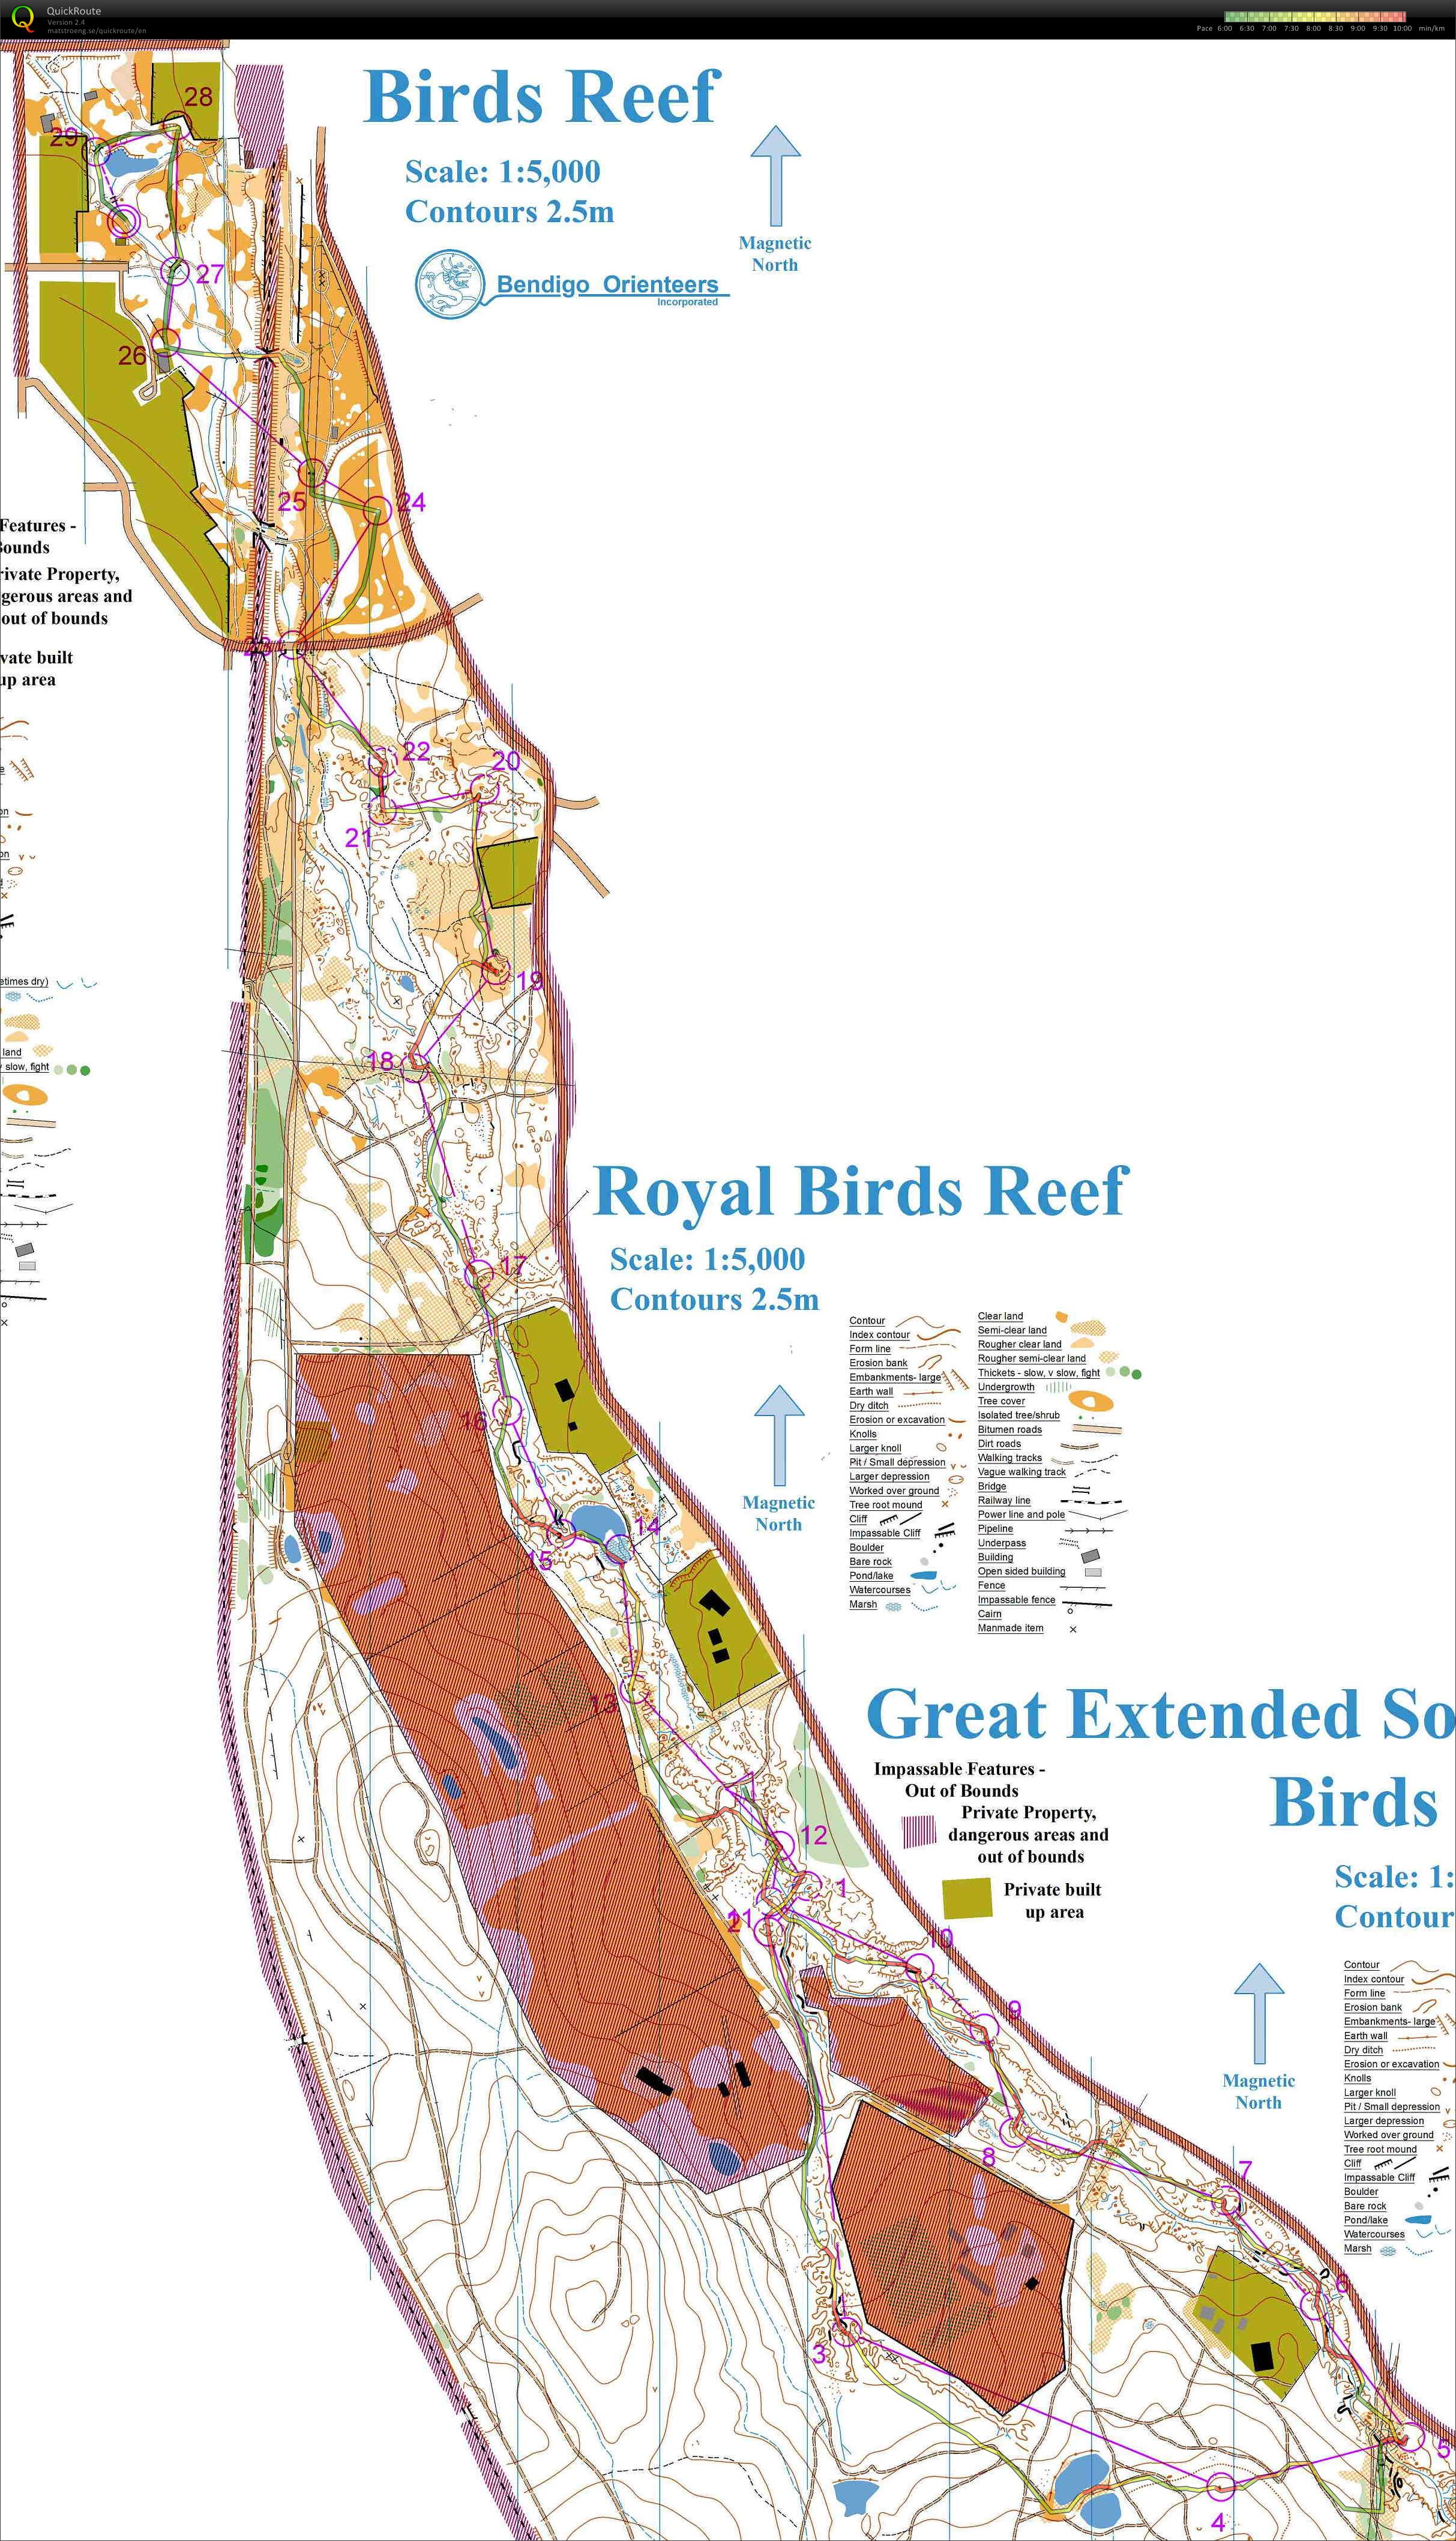 Re-run of State Series Course 3 Birds Reef (24/09/2015)